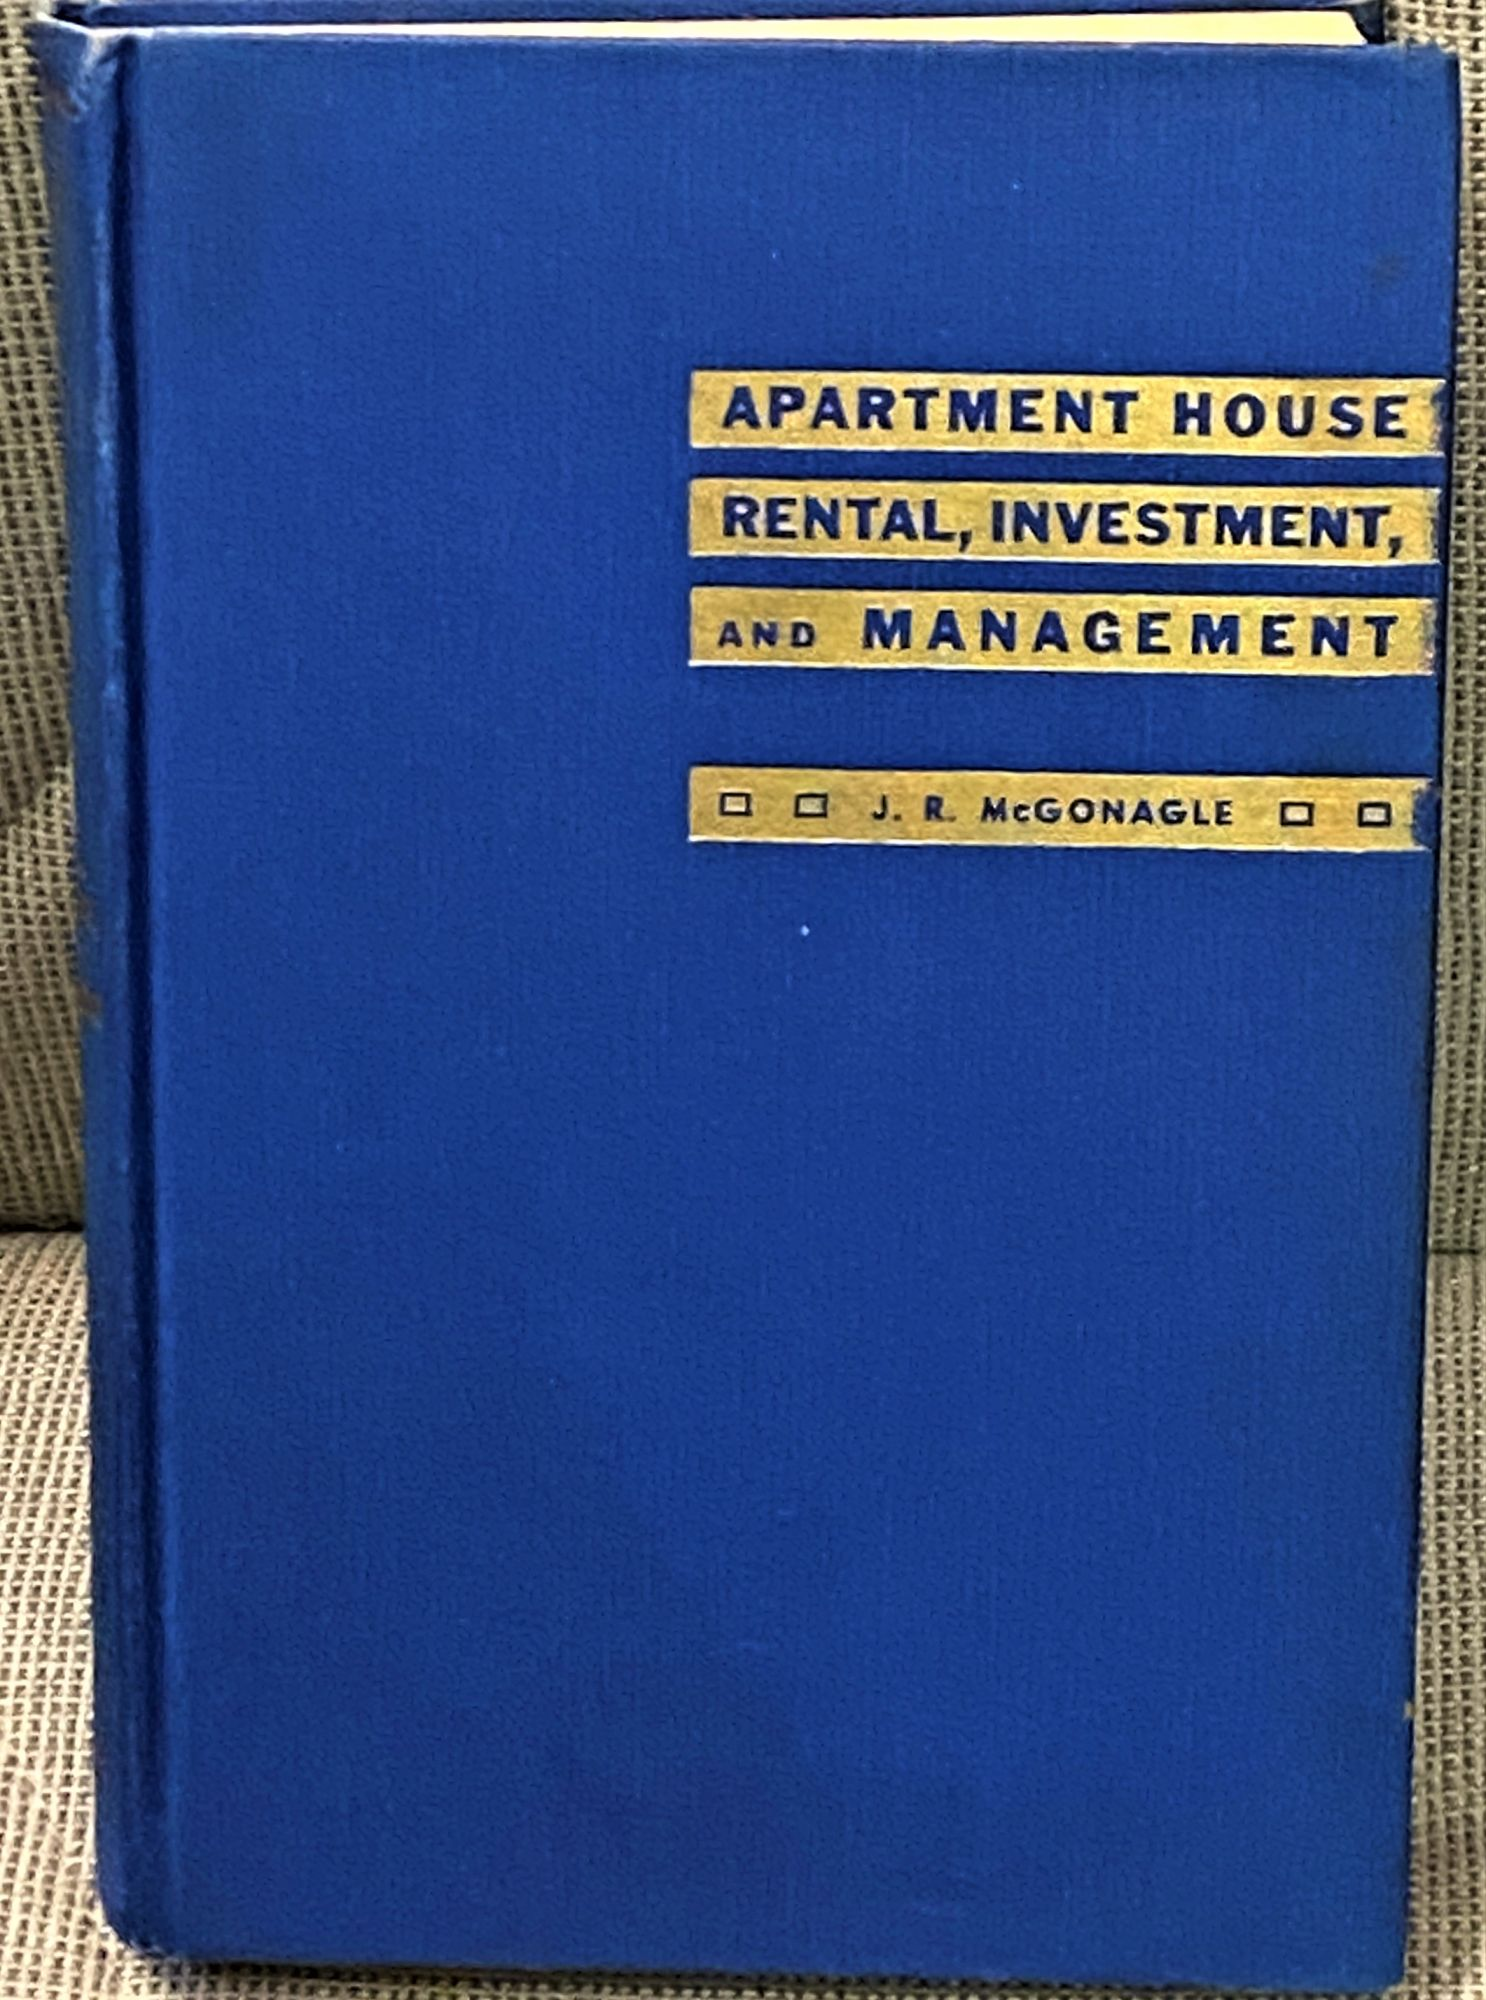 Apartment House Rental, Investment, and Management J. R. McGonagle [ ] (bi_19387211320) photo